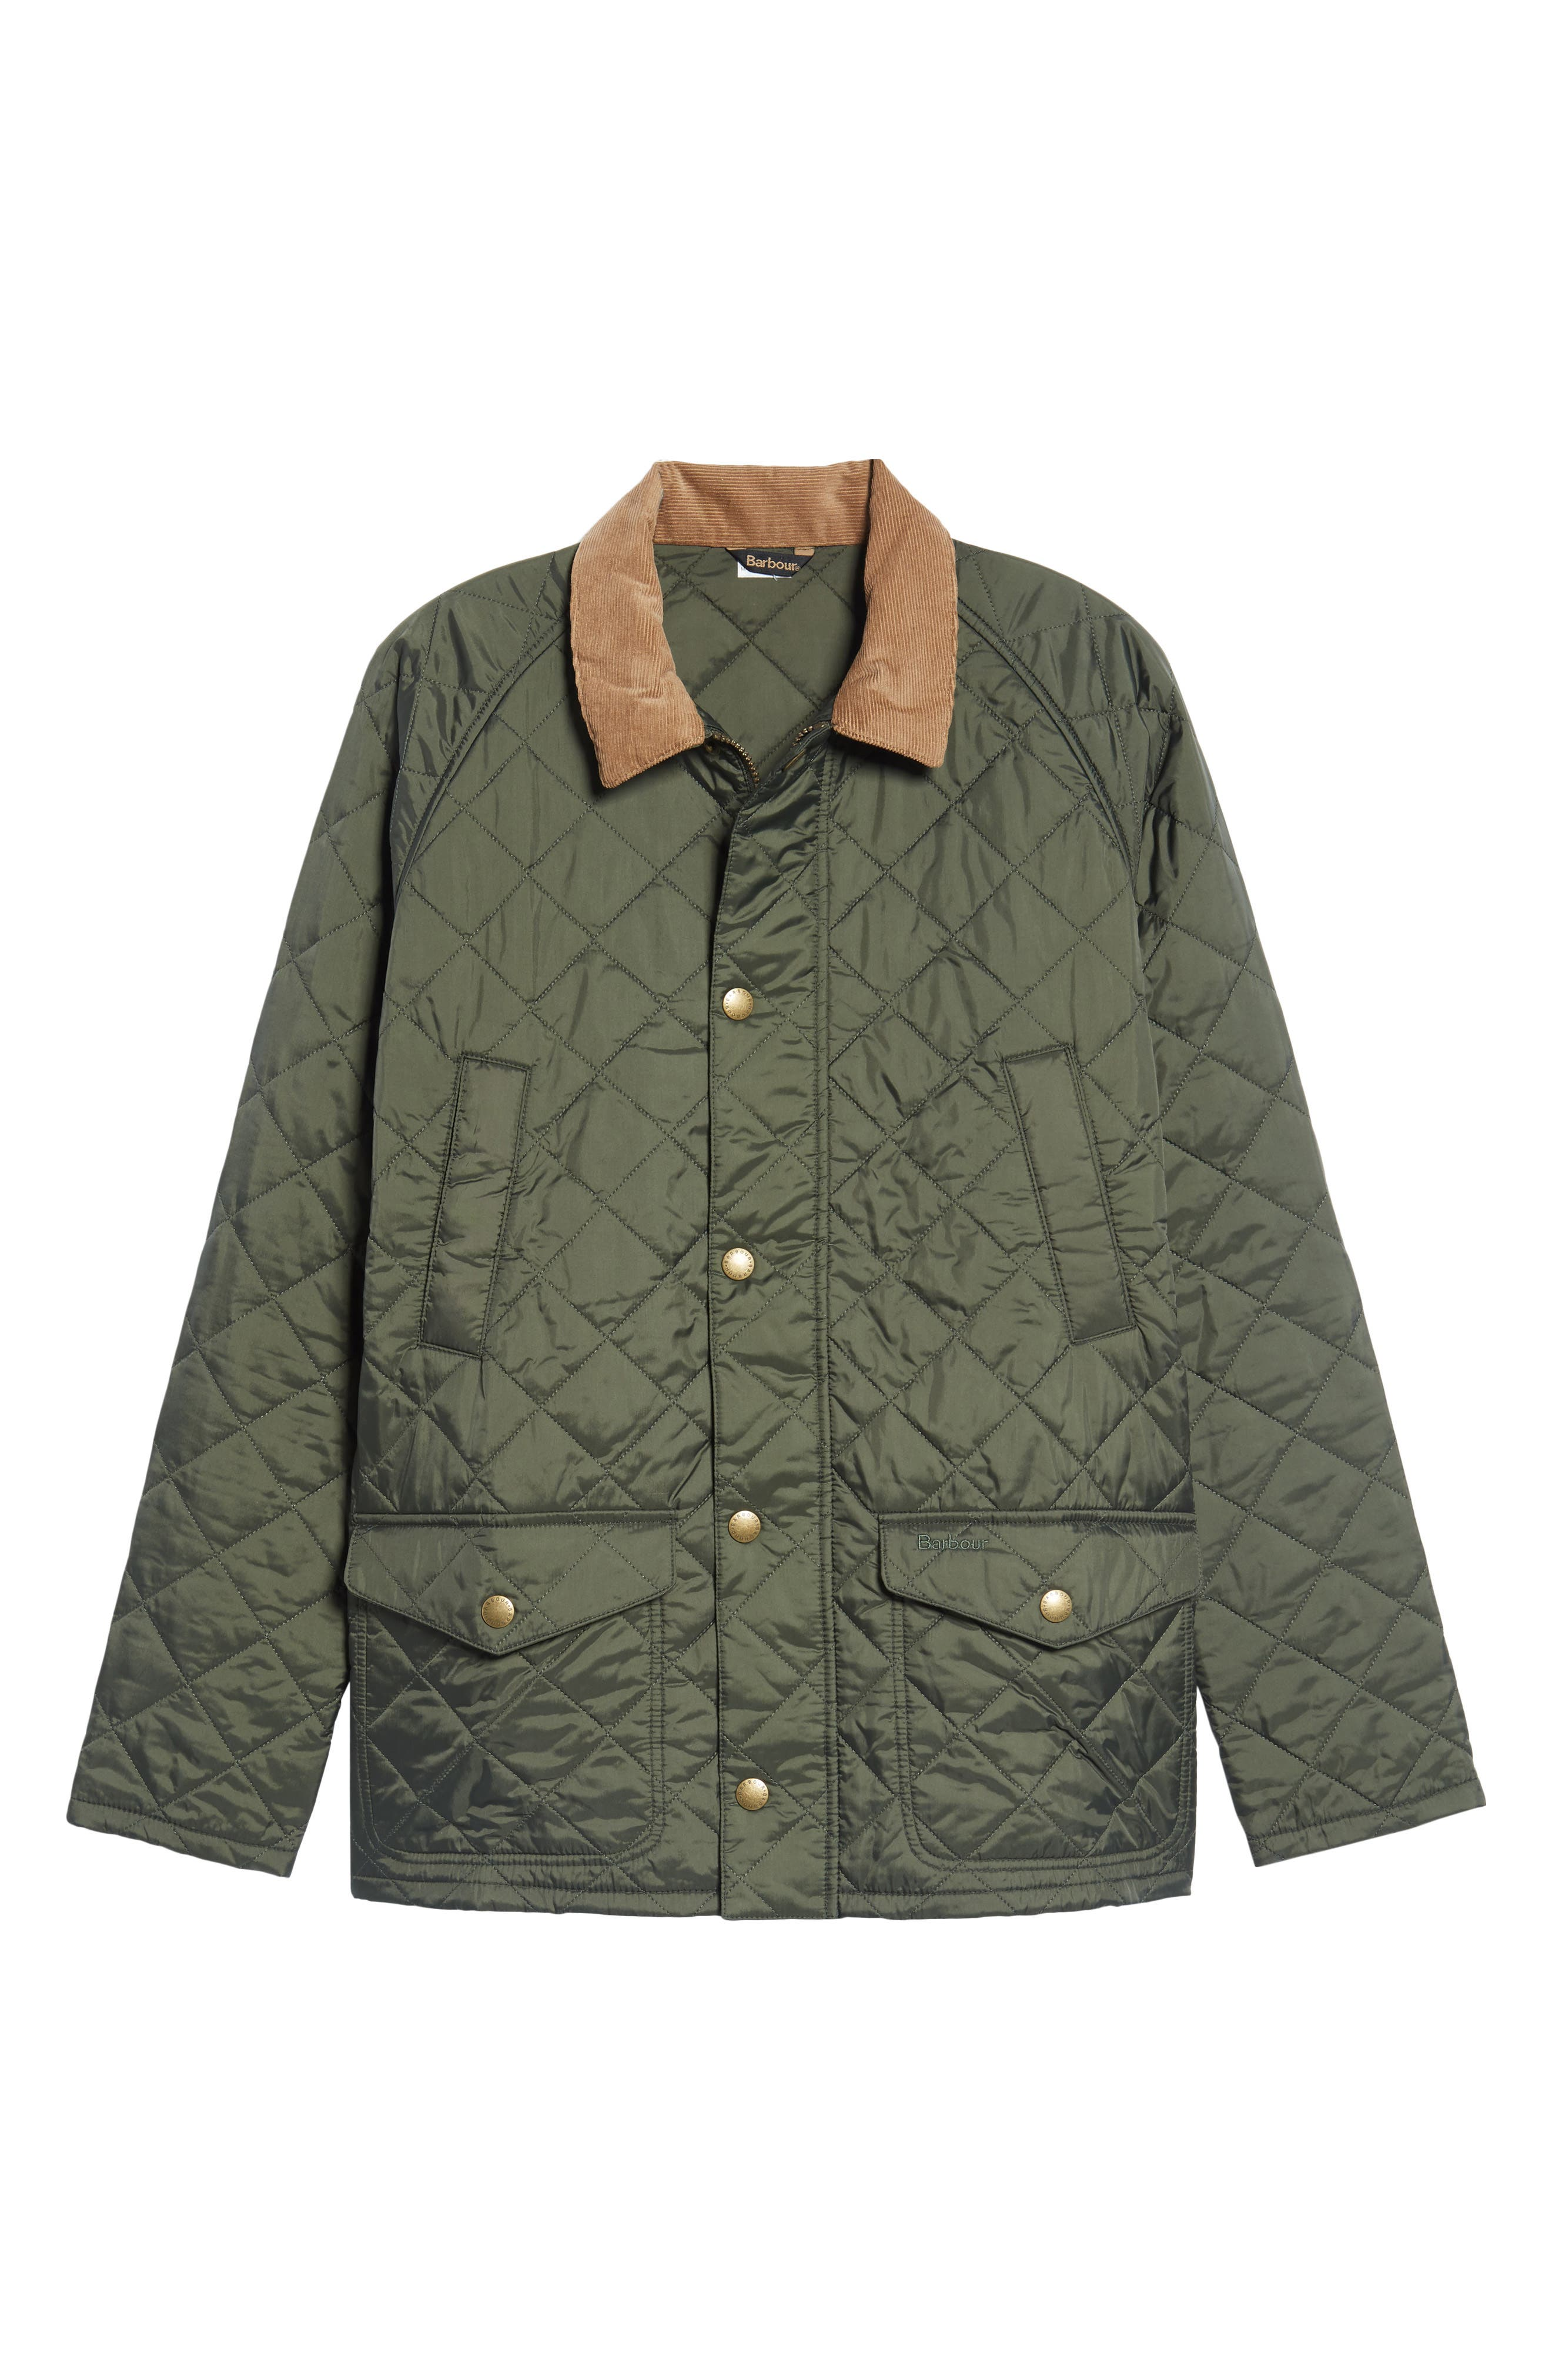 'Canterdale' Slim Fit Water-Resistant Diamond Quilted Jacket,                             Alternate thumbnail 6, color,                             305